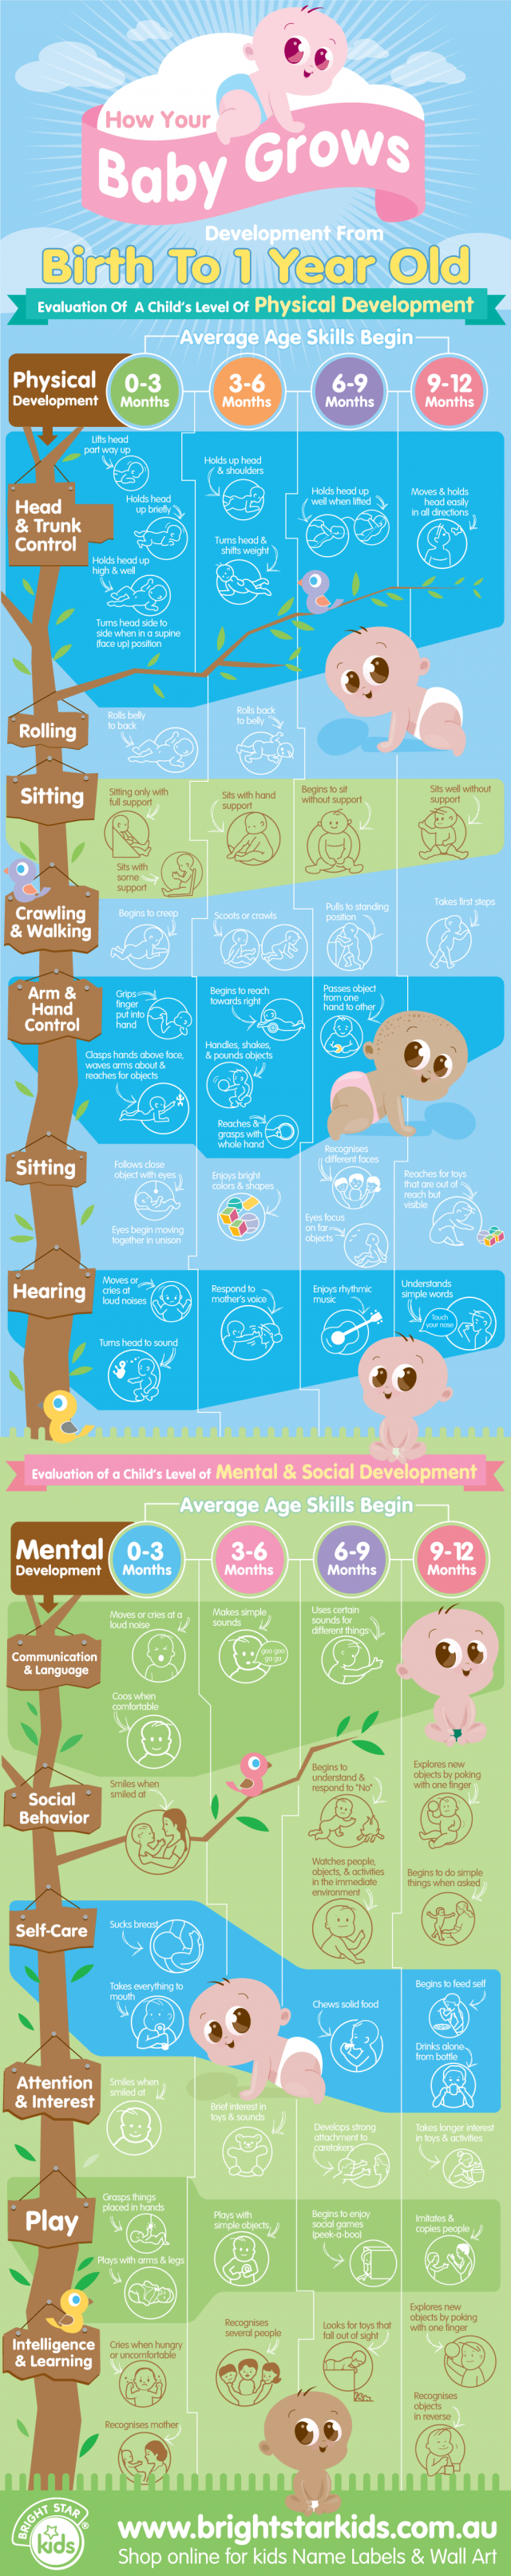 BSK-BabyGrowth-Infographic1